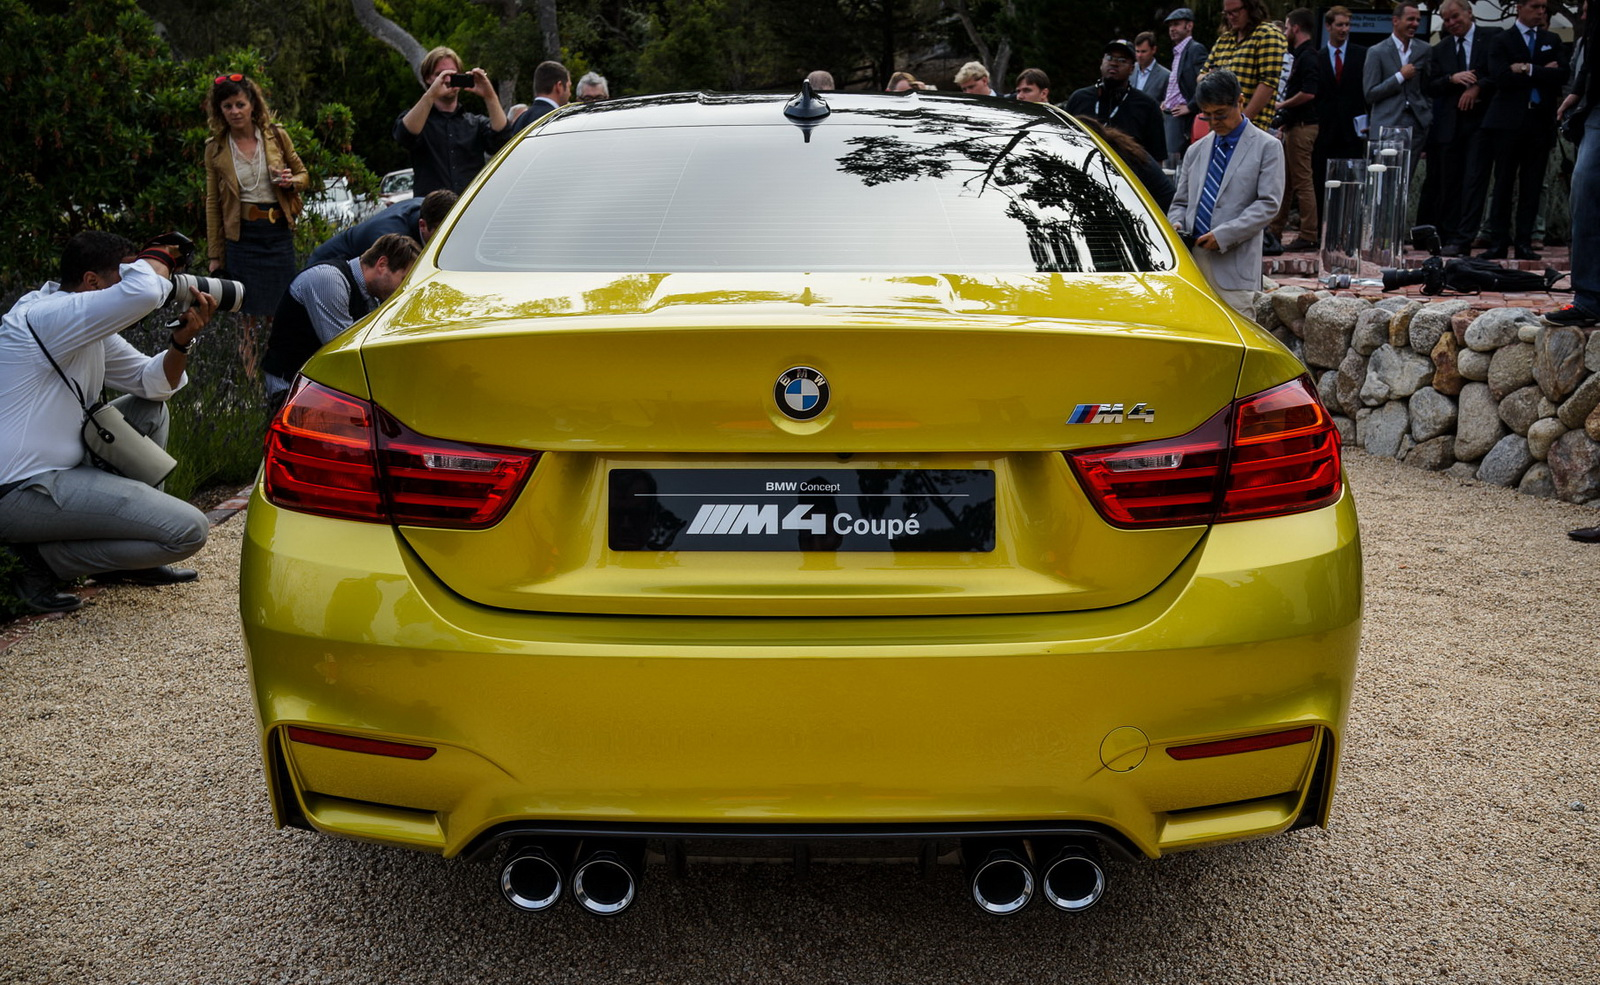 BMW M4 Concept Live Photos at Pebble Beach 2013